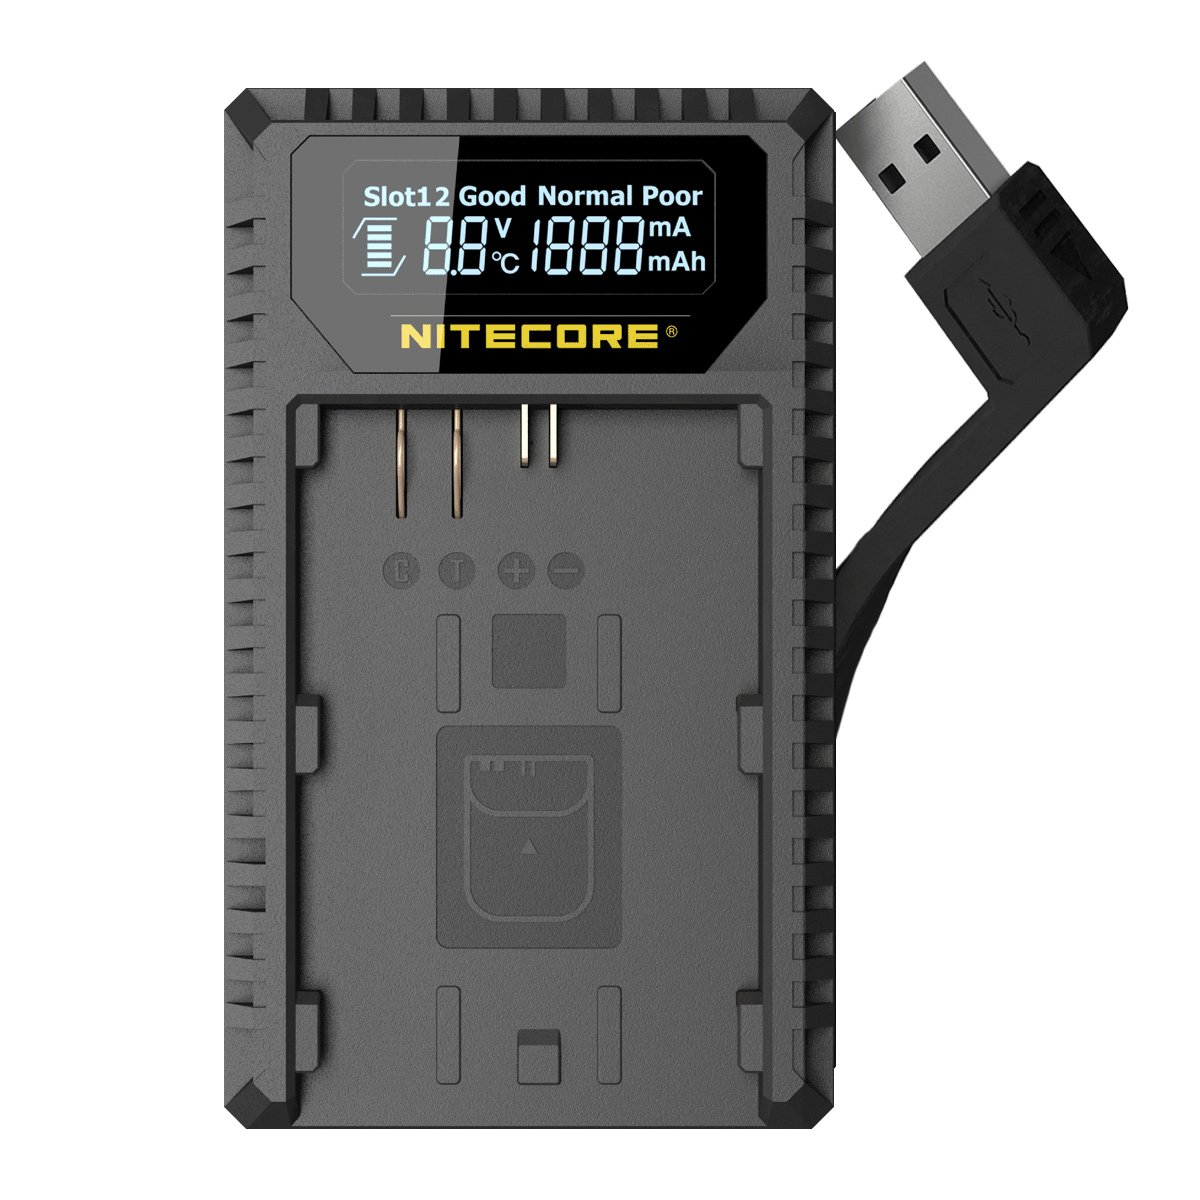 Nitecore UCN1 Digital USB Charger for Canon EOS LP-E6 LP-E6N & LP-E8 Batteries with Lumen Tactical Adapter - Compatible with Canon Rebel, Kiss, Mark II, Mark III, X4, & T Series Cameras